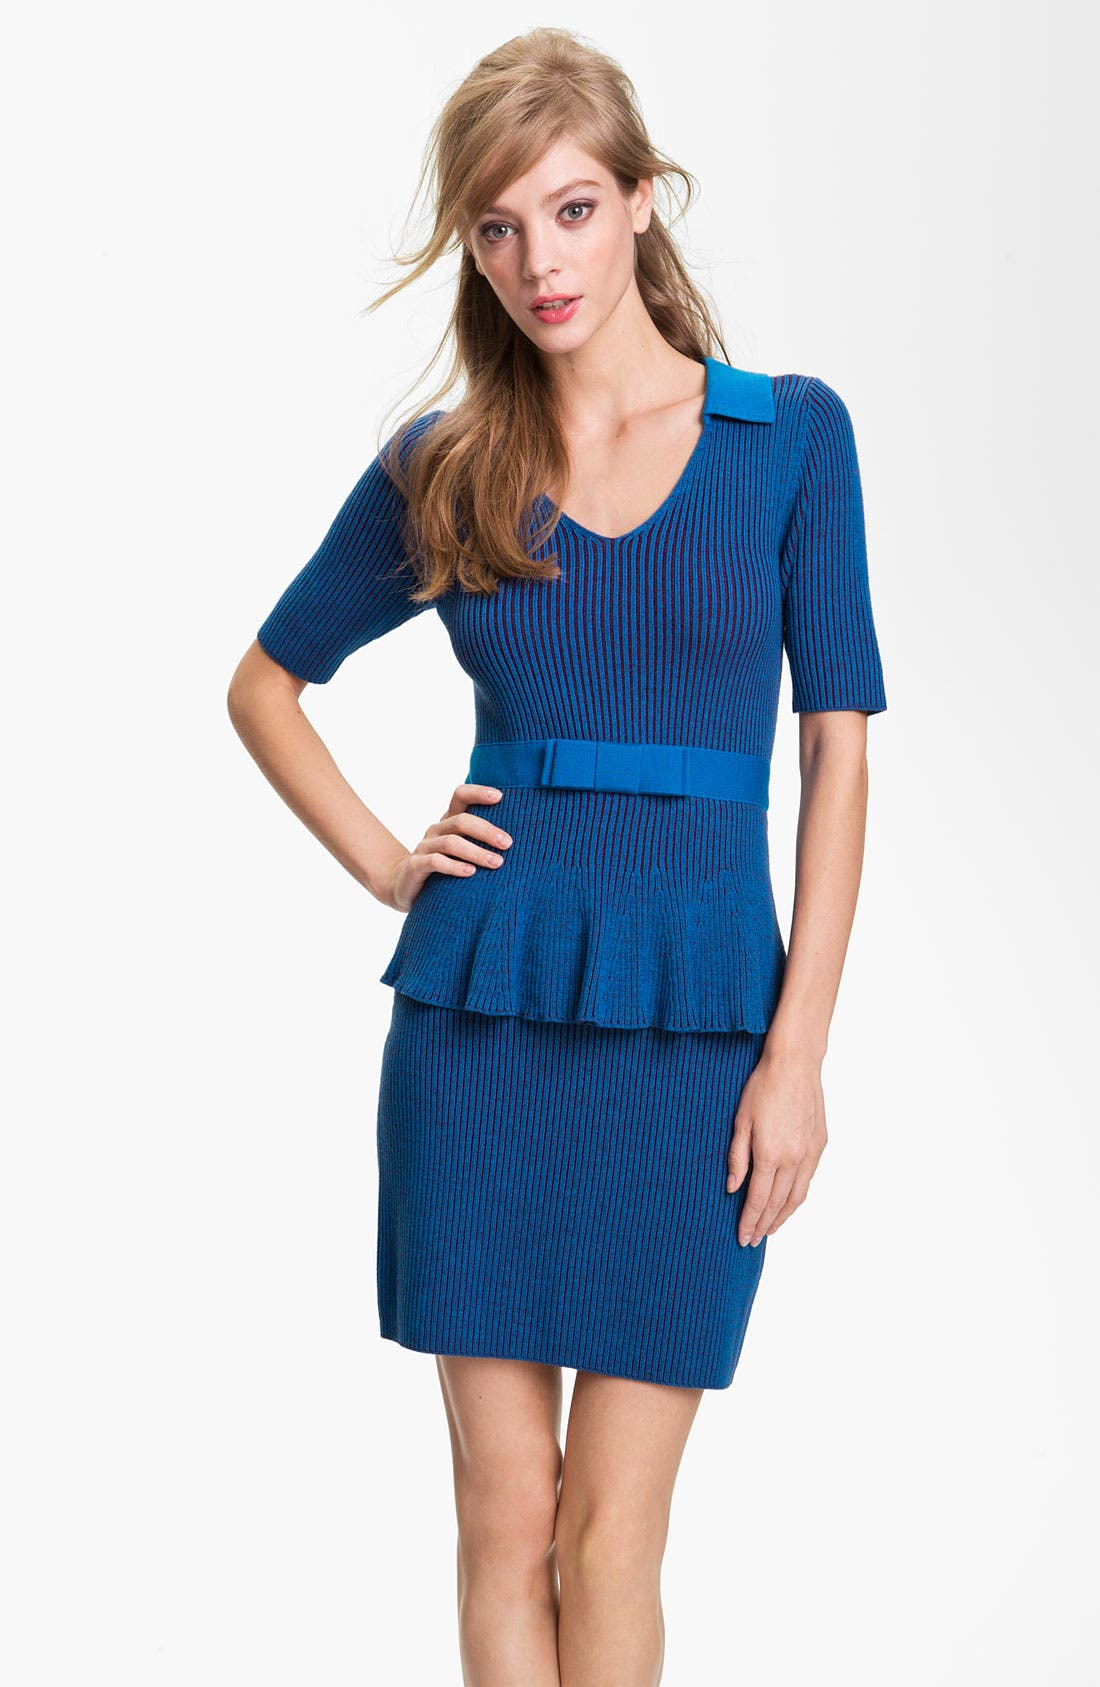 Main Image - Nanette Lepore 'The Empress' Merino Wool Sheath Dress (Online Exclusive)